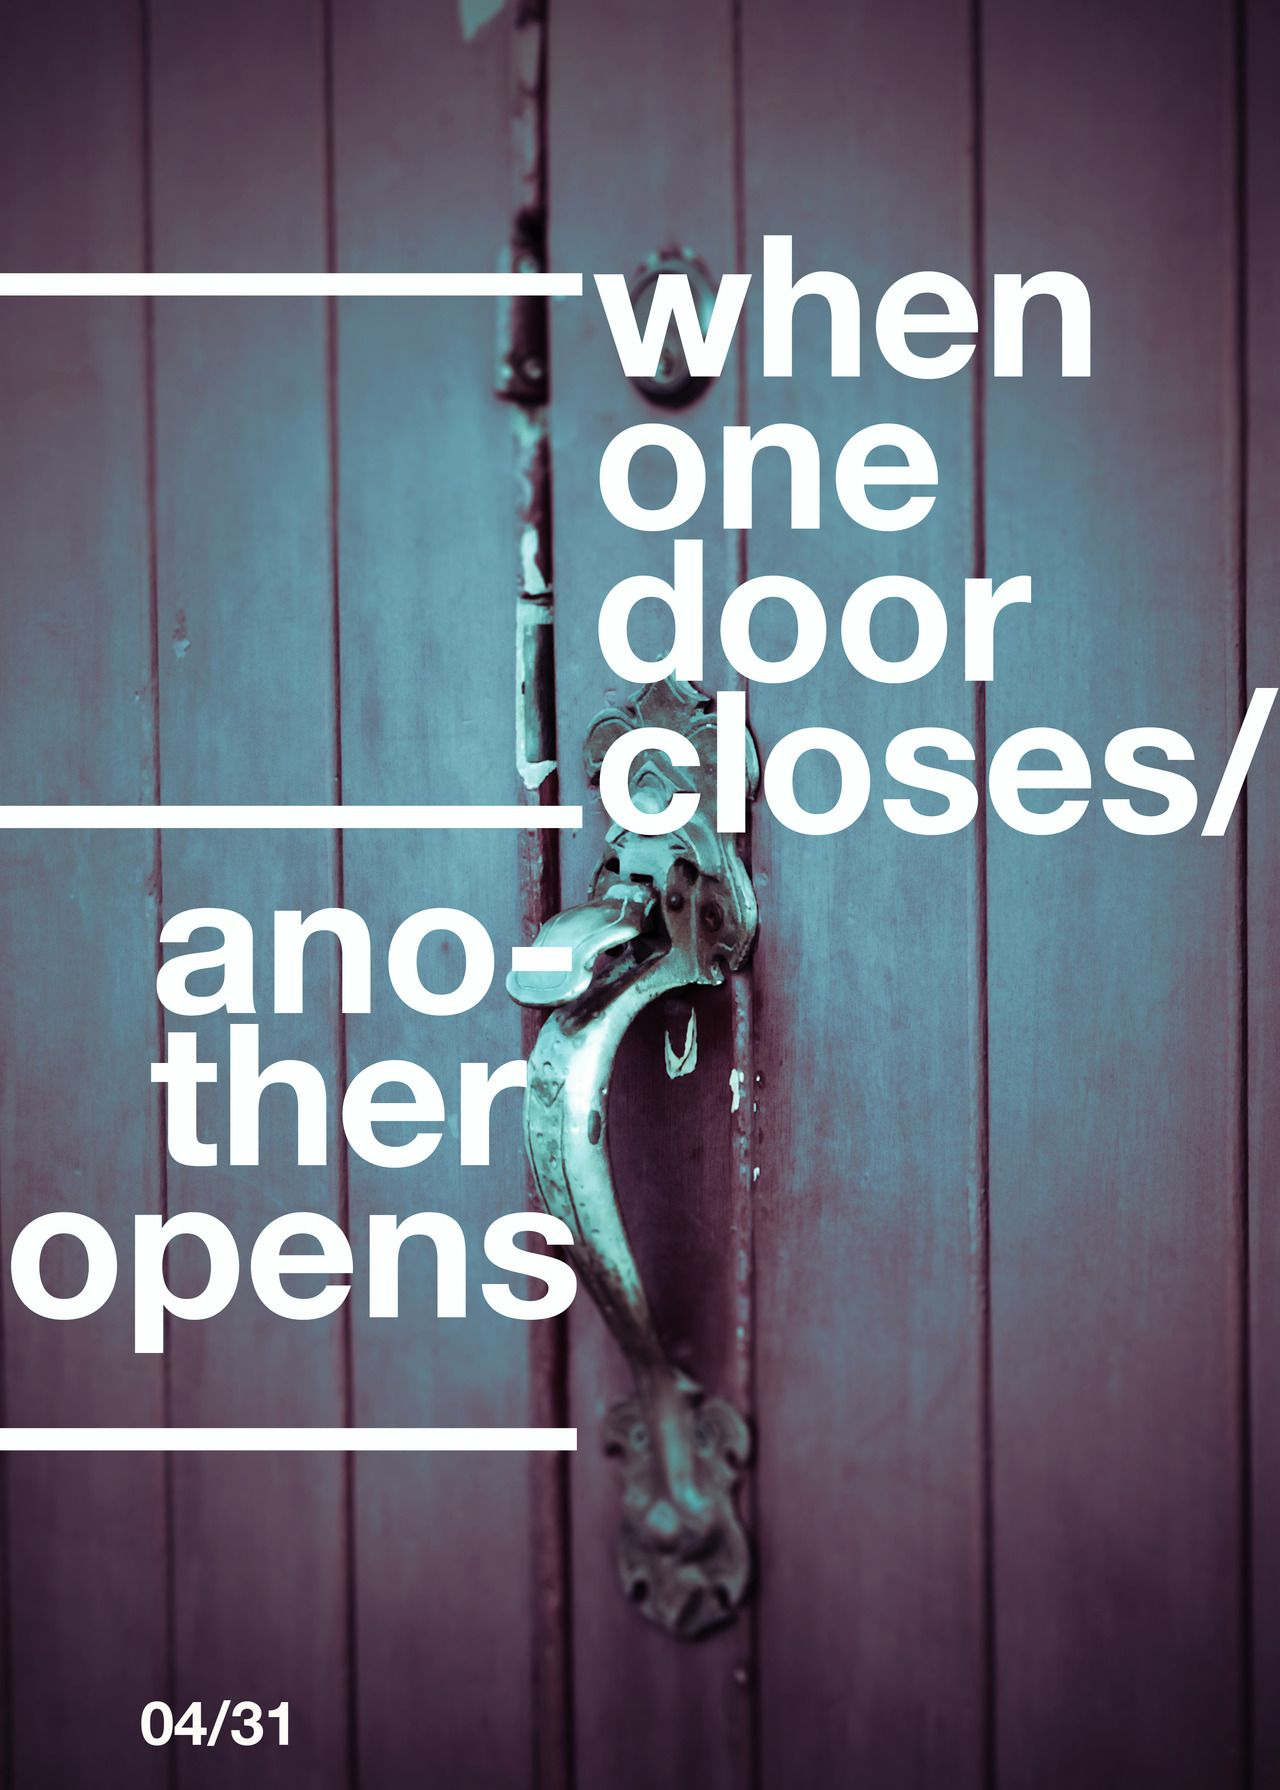 Quotes About Doors Digital Art Selected For The Daily Inspiration 1206  Agreed